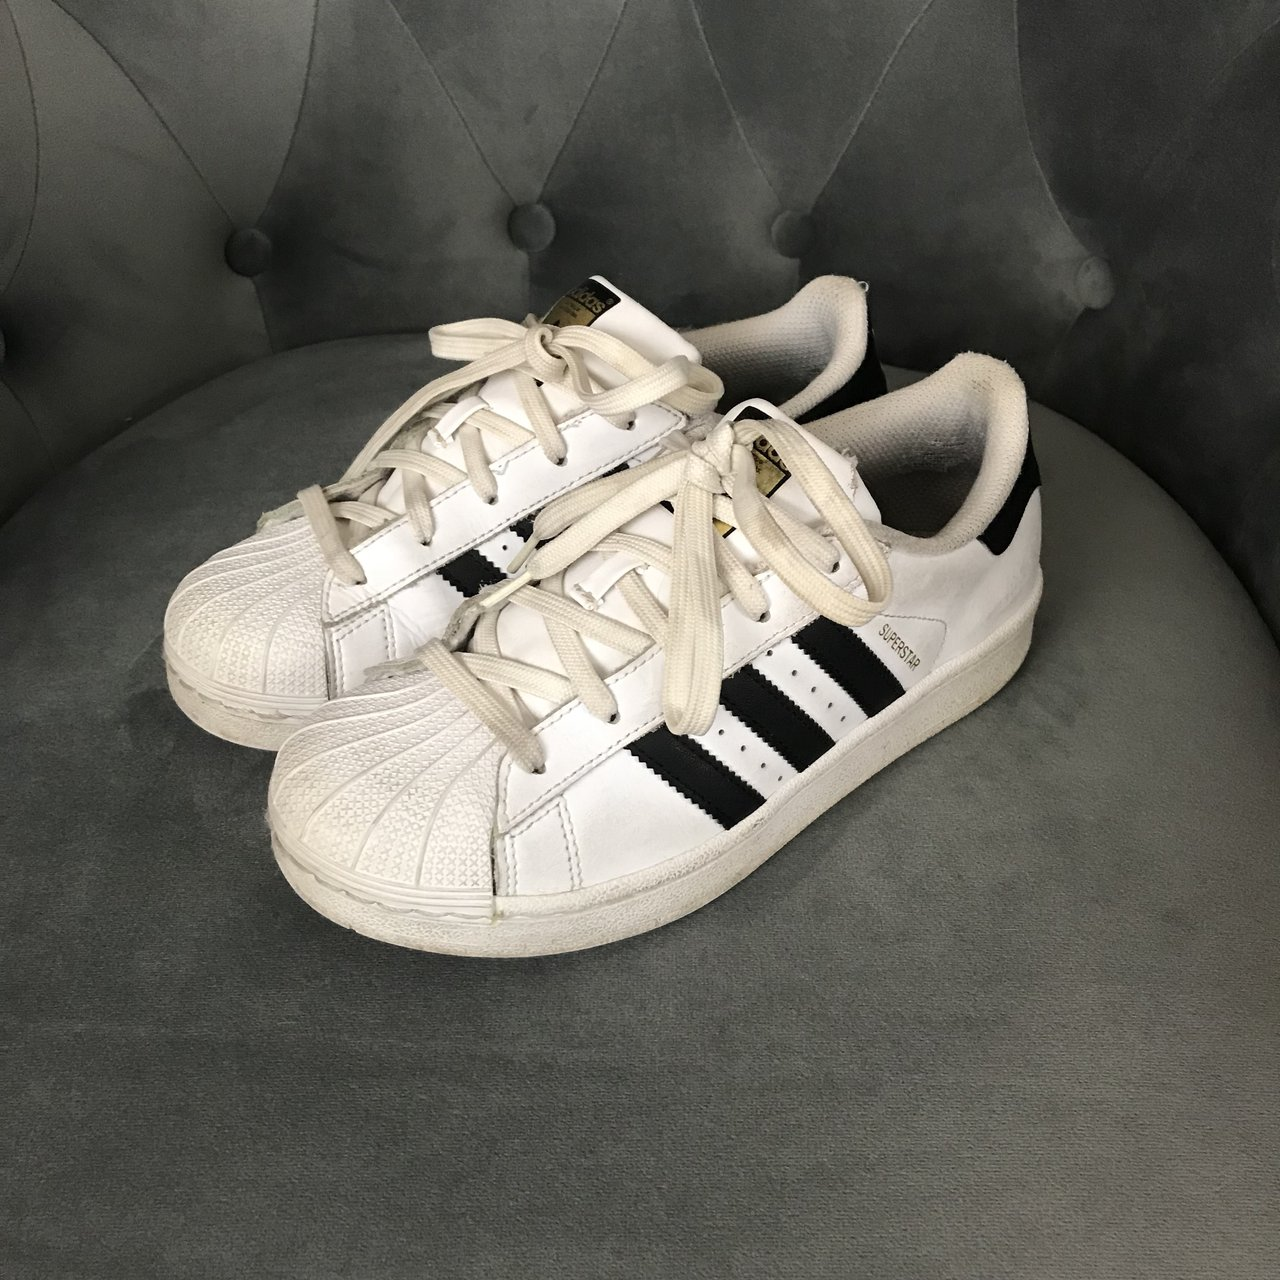 adidas superstar sneakers. these have a white toe cap and is - Depop 8c7e99088